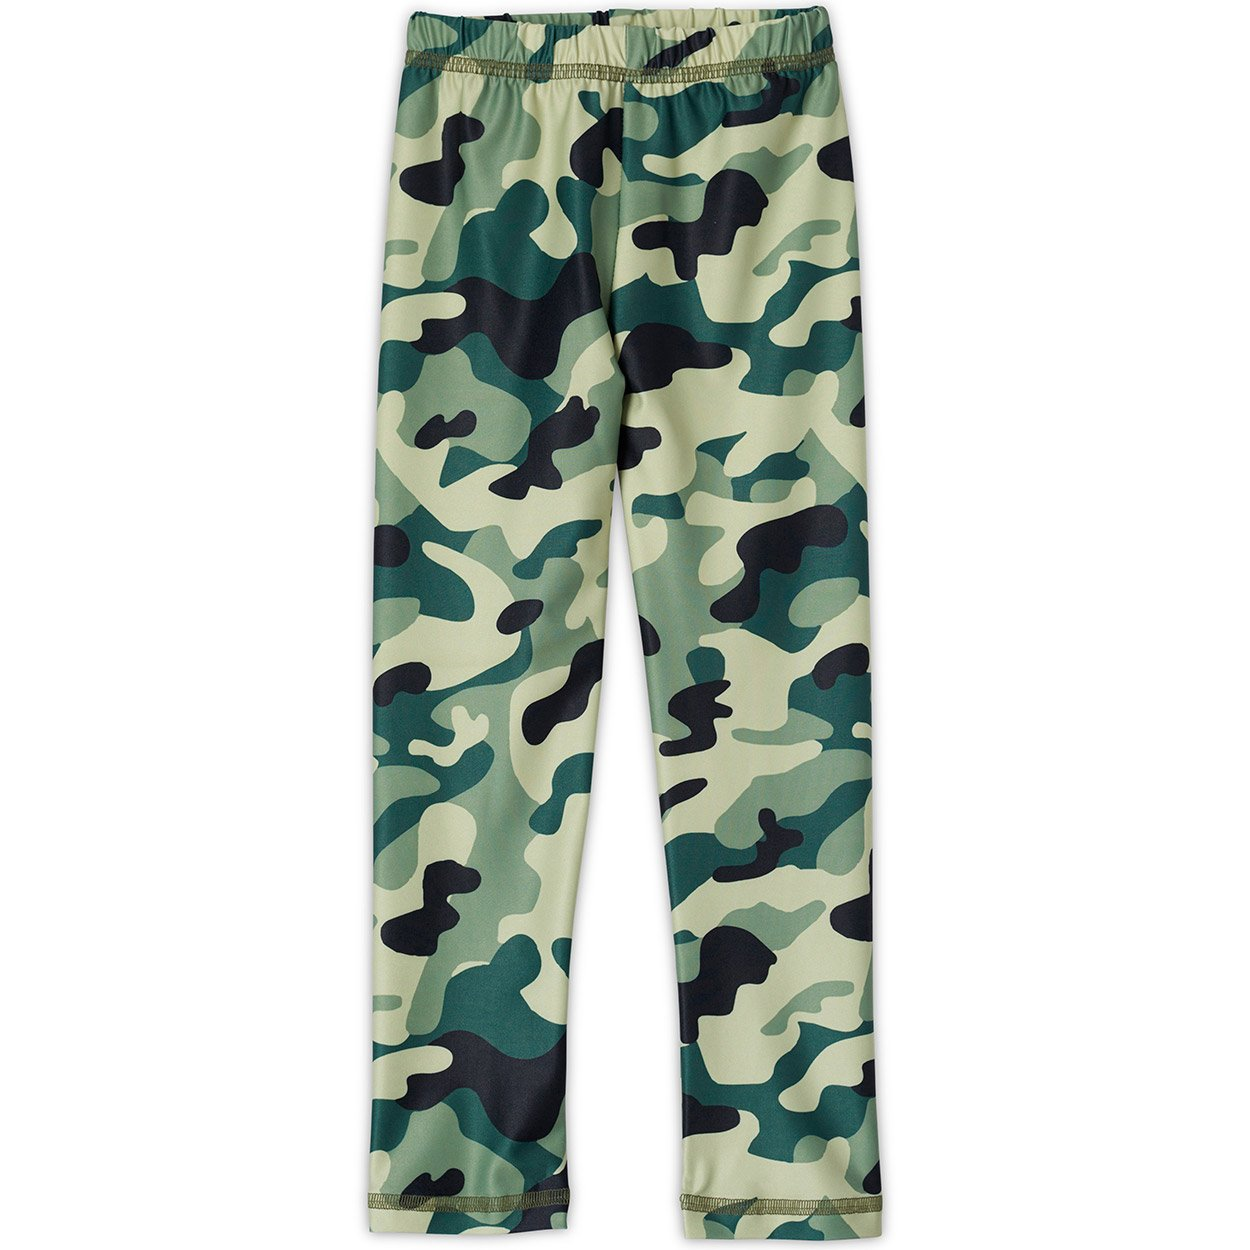 Green Camo Leggings UPF 50+